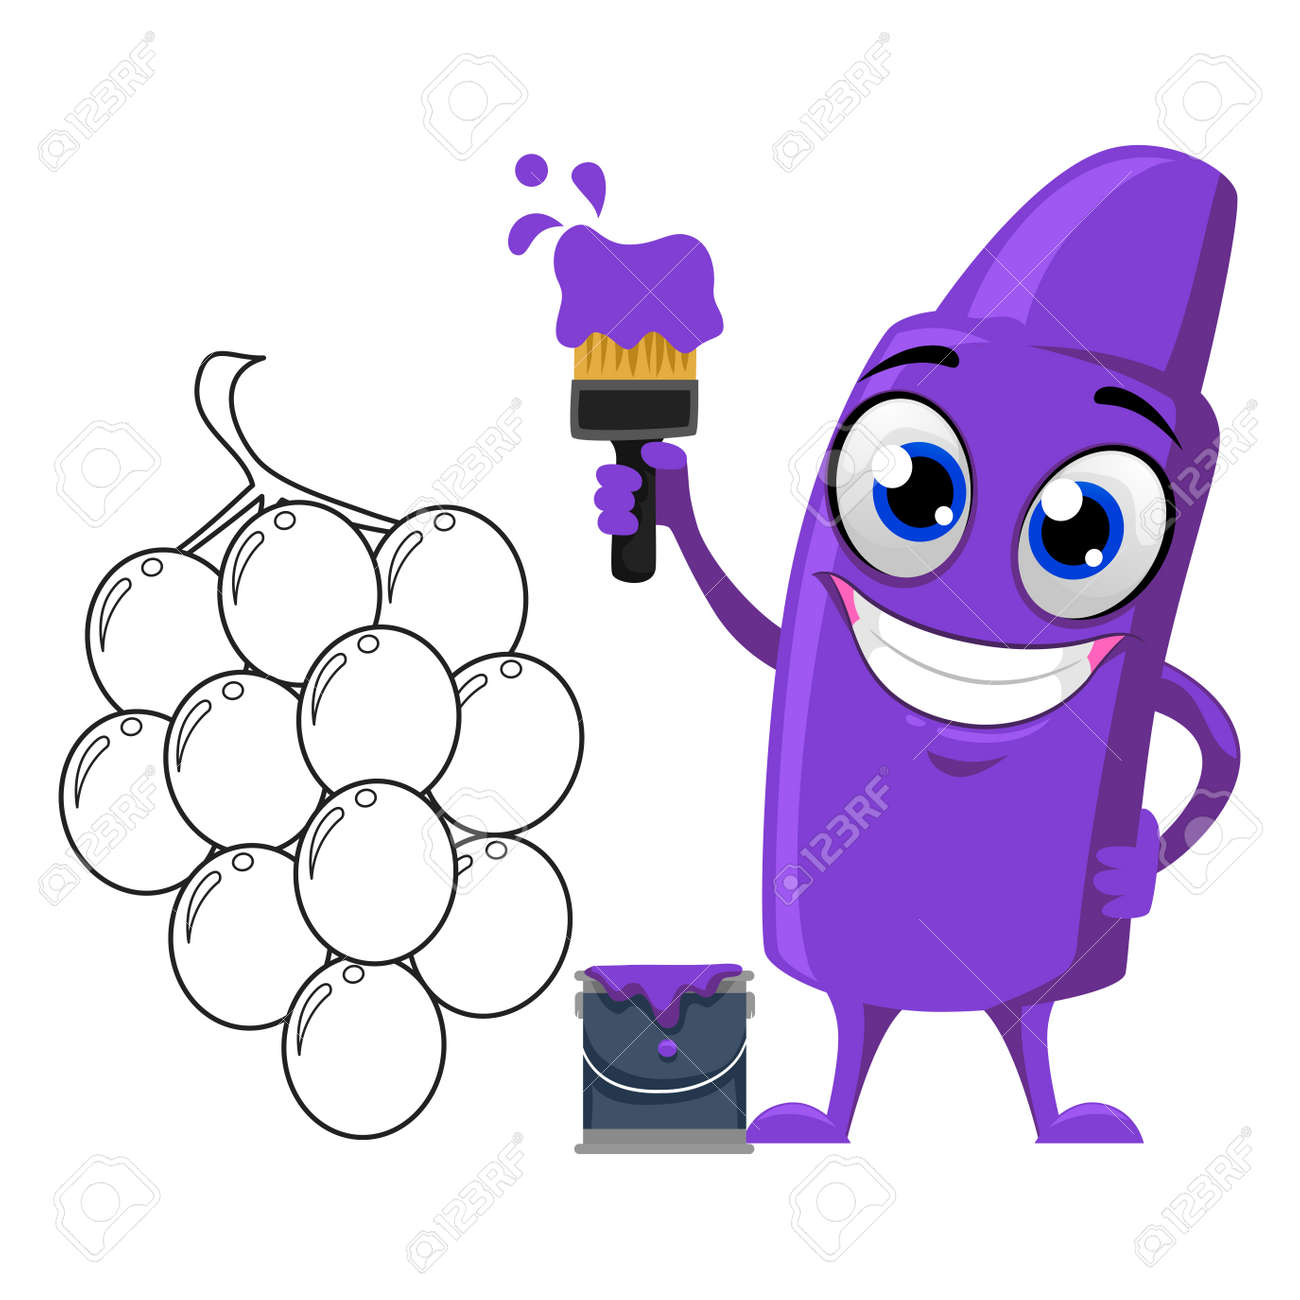 Vector Illustration Of Violet Crayon Mascot Coloring Grapes Royalty ... for clipart violet crayon  157uhy